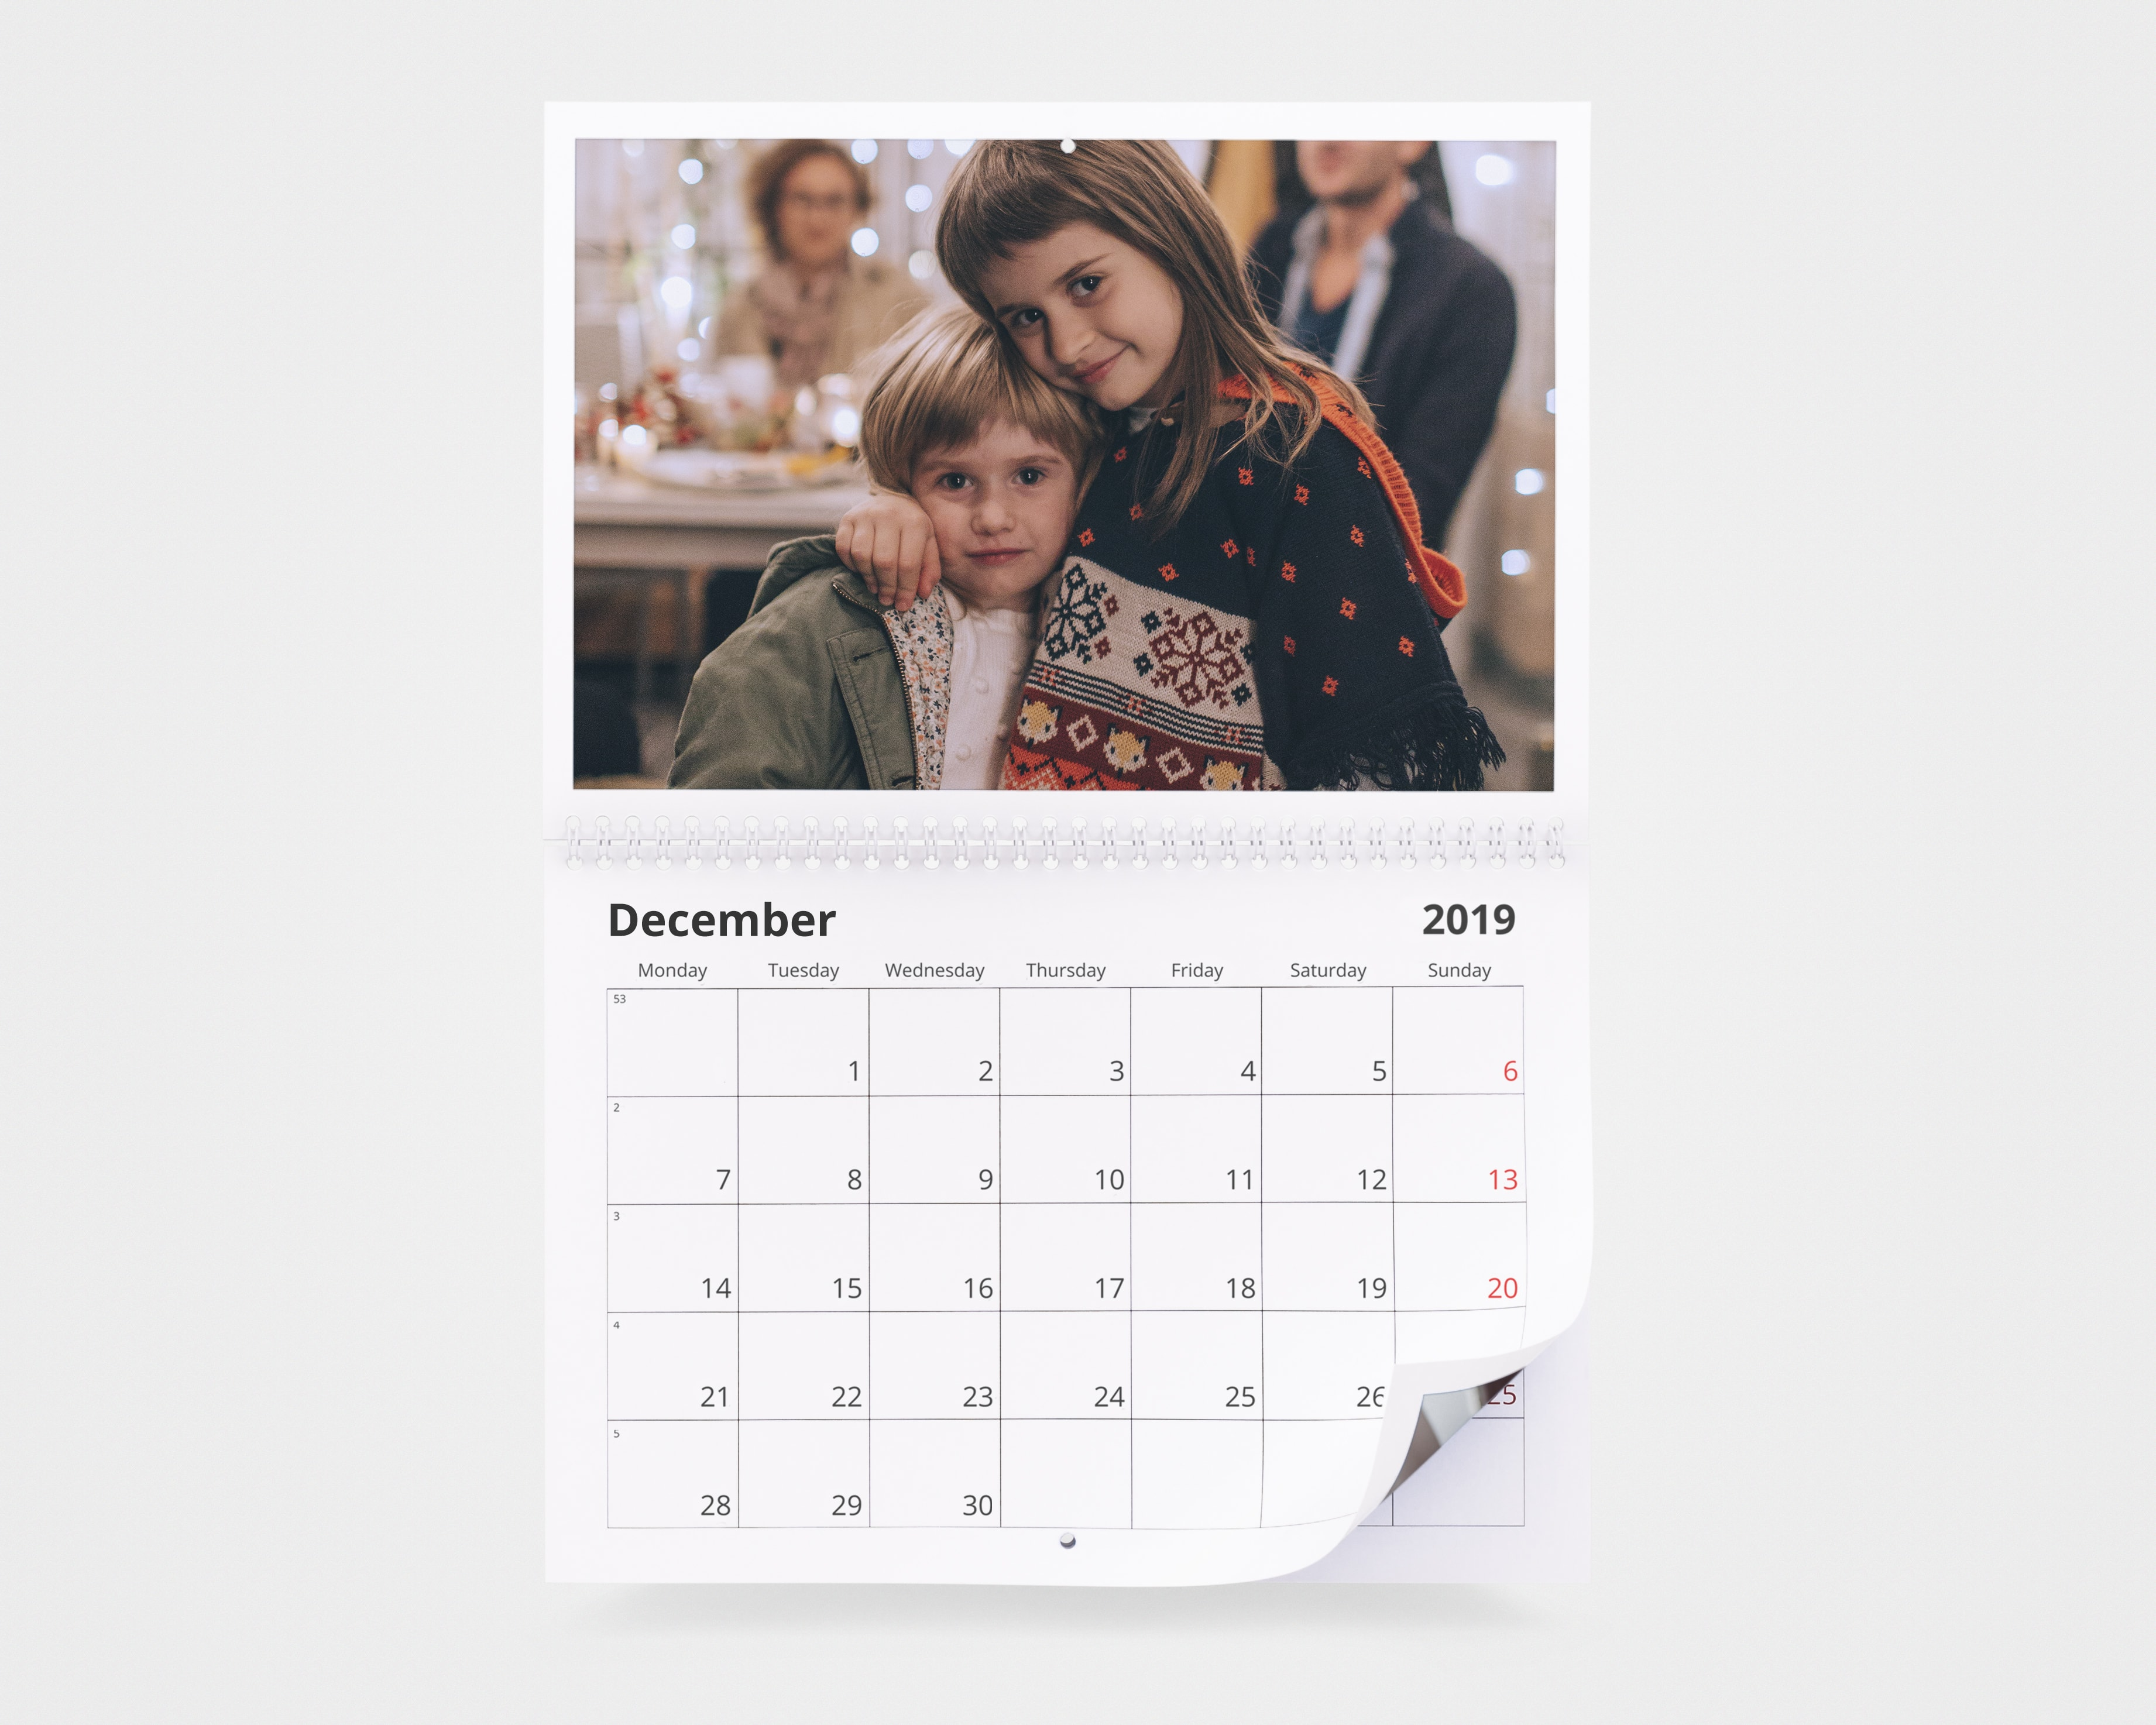 A photo calendar with an image of two children on in Christmassy jumpers and winter coats